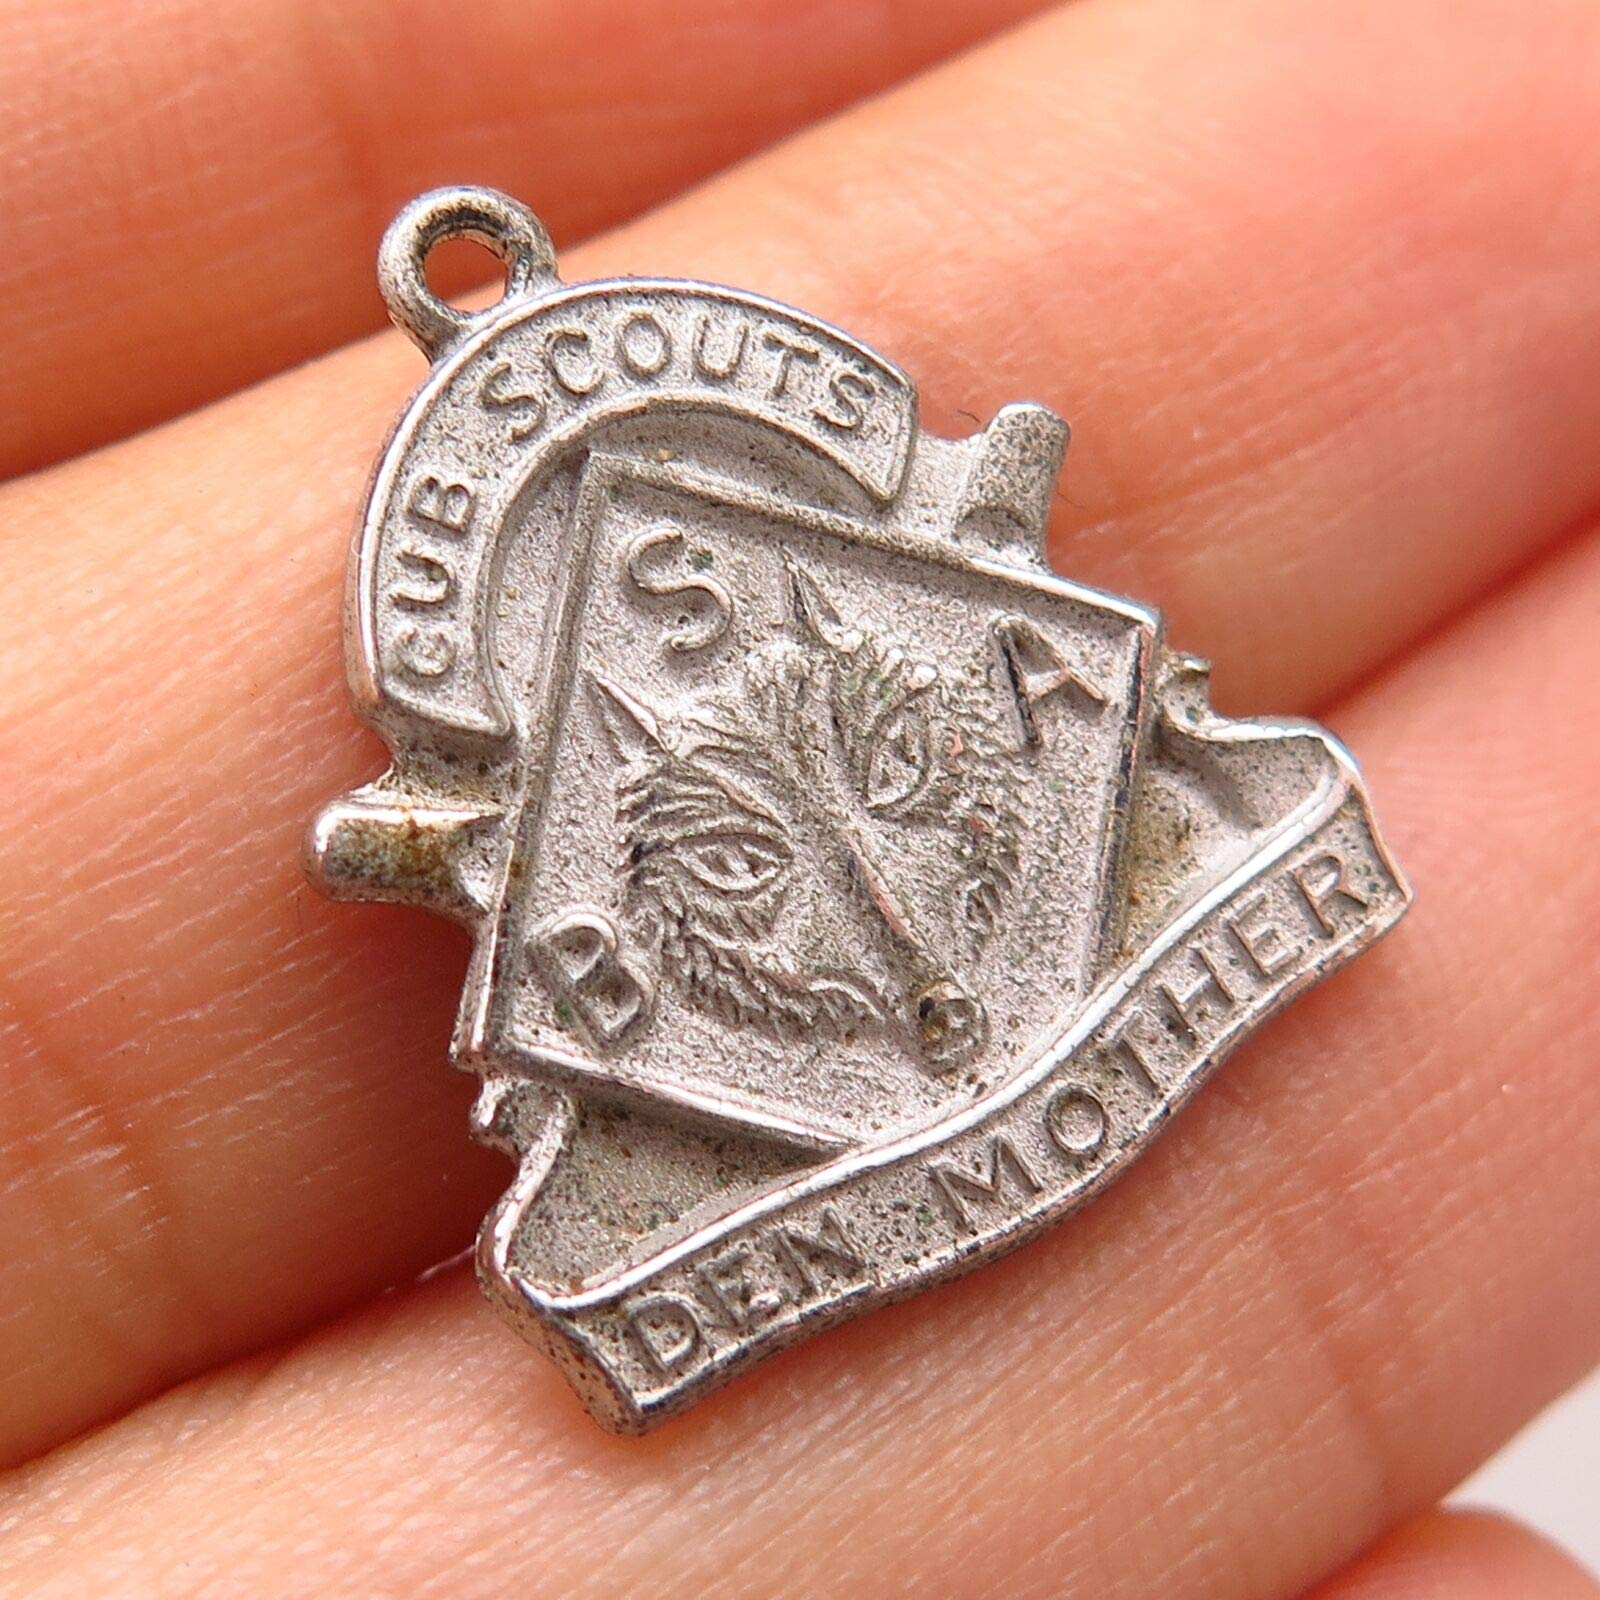 925 Sterling Silver Vintage BSA Cub Scouts Den Mother Wolf Charm Pendant Pre-Owned Sterling Charm by Wholesale Charms by Wholesale Charms